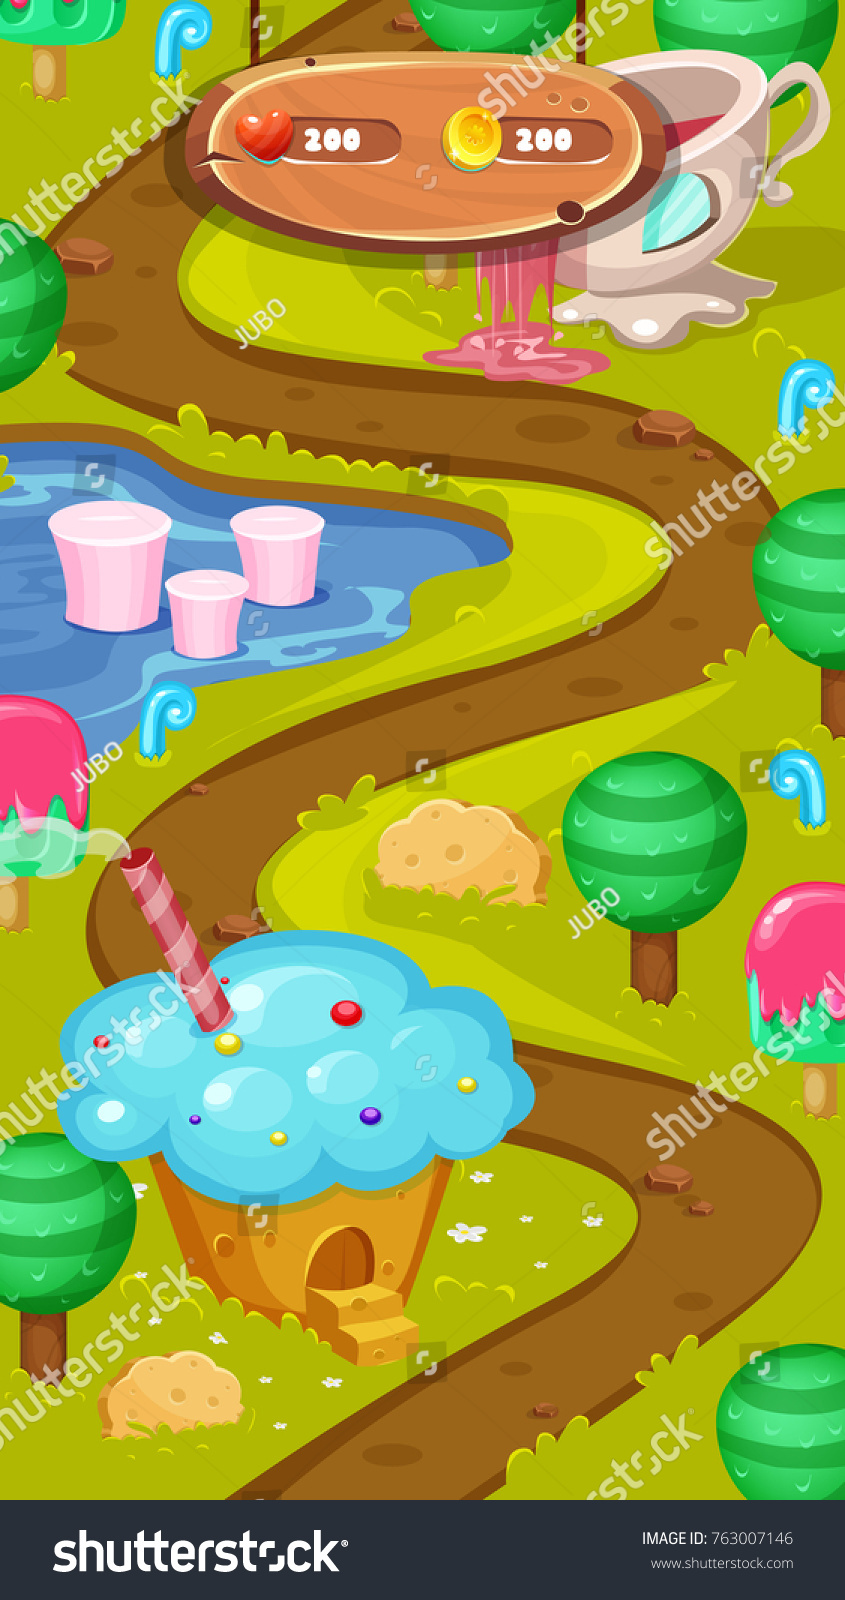 Level map assetssweet world mobile game vectores en stock 763007146 level map assetssweet world mobile game user interface gui map screen forest gumiabroncs Gallery